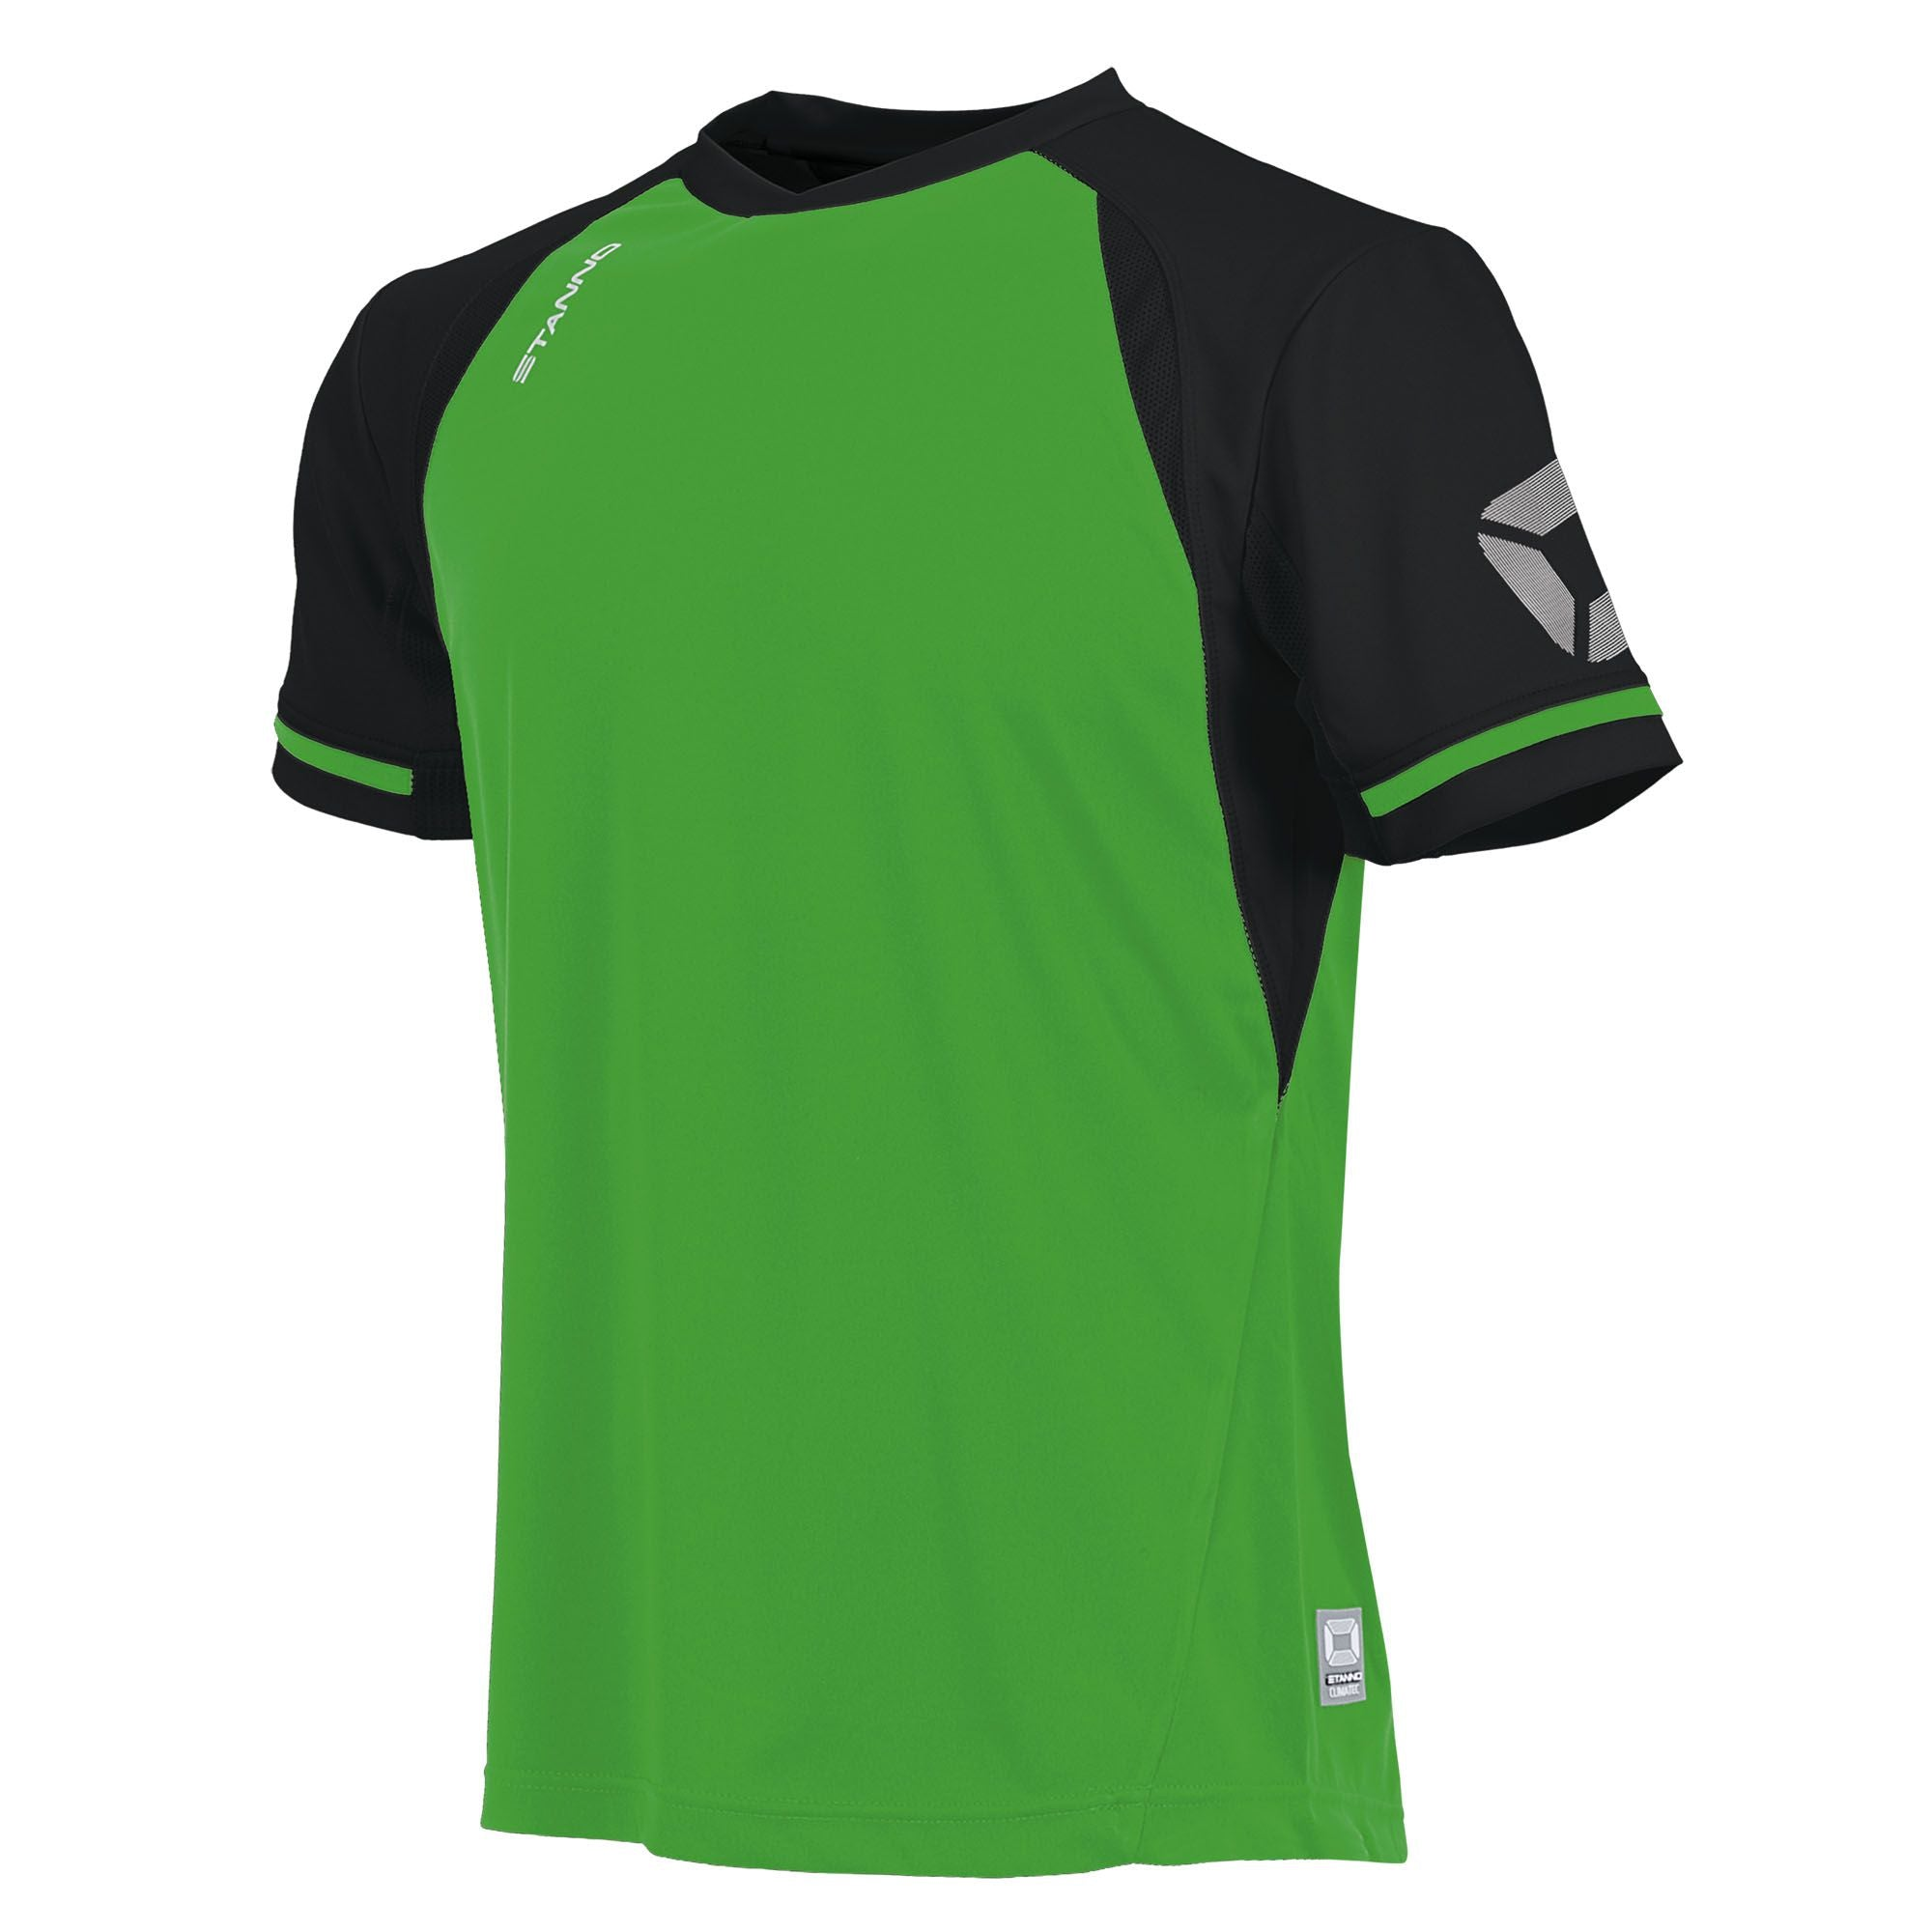 short sleeved Stanno Liga shirt in bright green with contrast black sleeves and collar, Stadium logo on the sleeve.